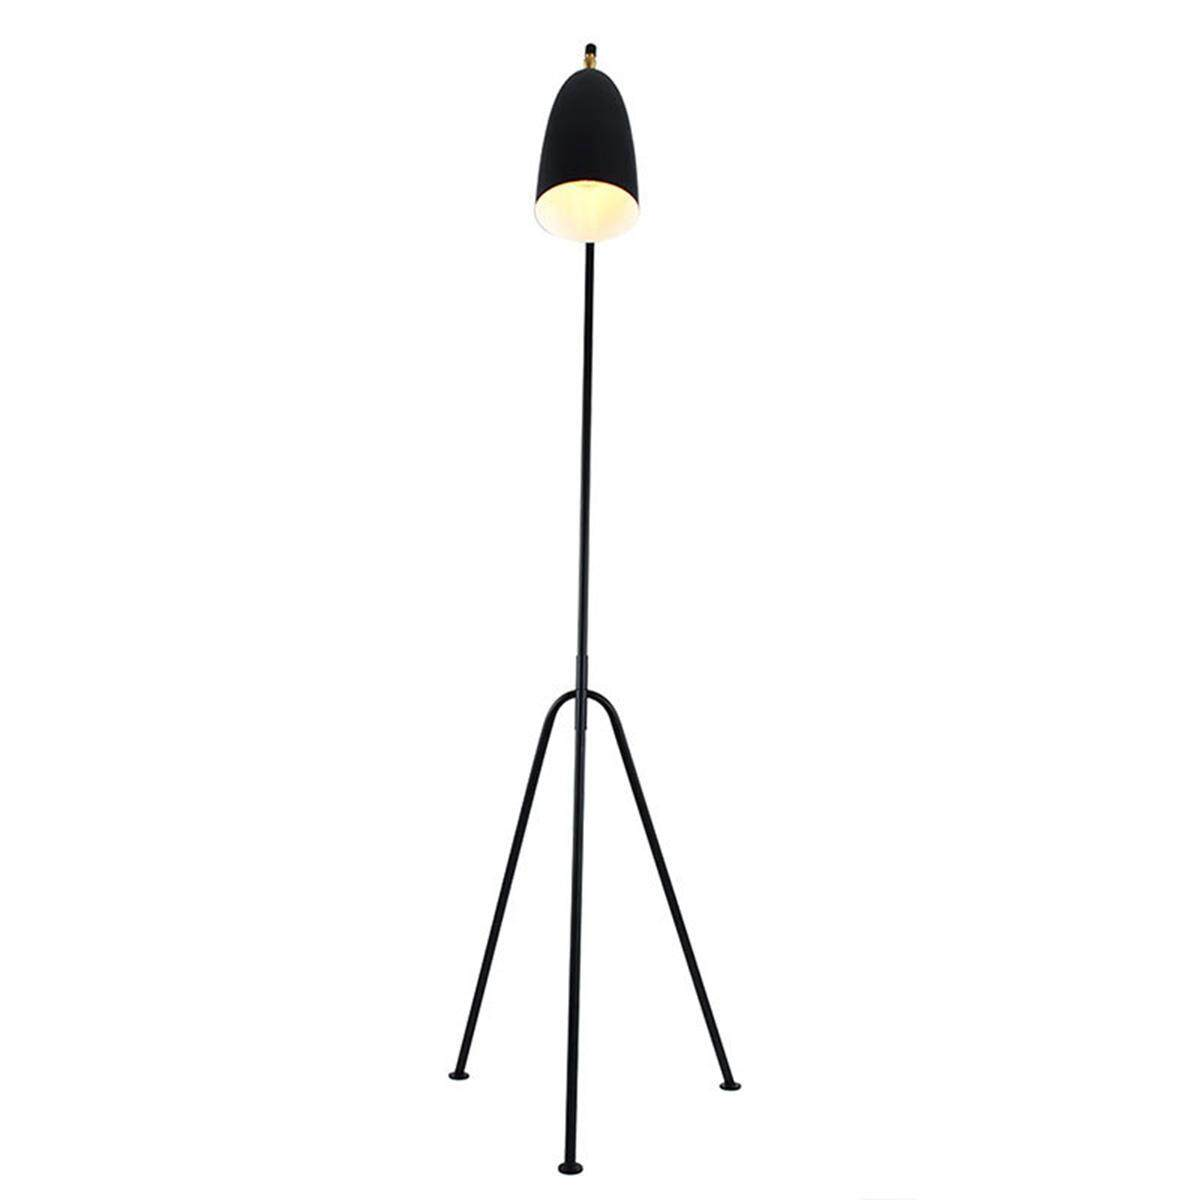 Modern Grasshopper Triangle Led Floor Lamp Greta Magnusson Grossman Style Lights By Glimmer.